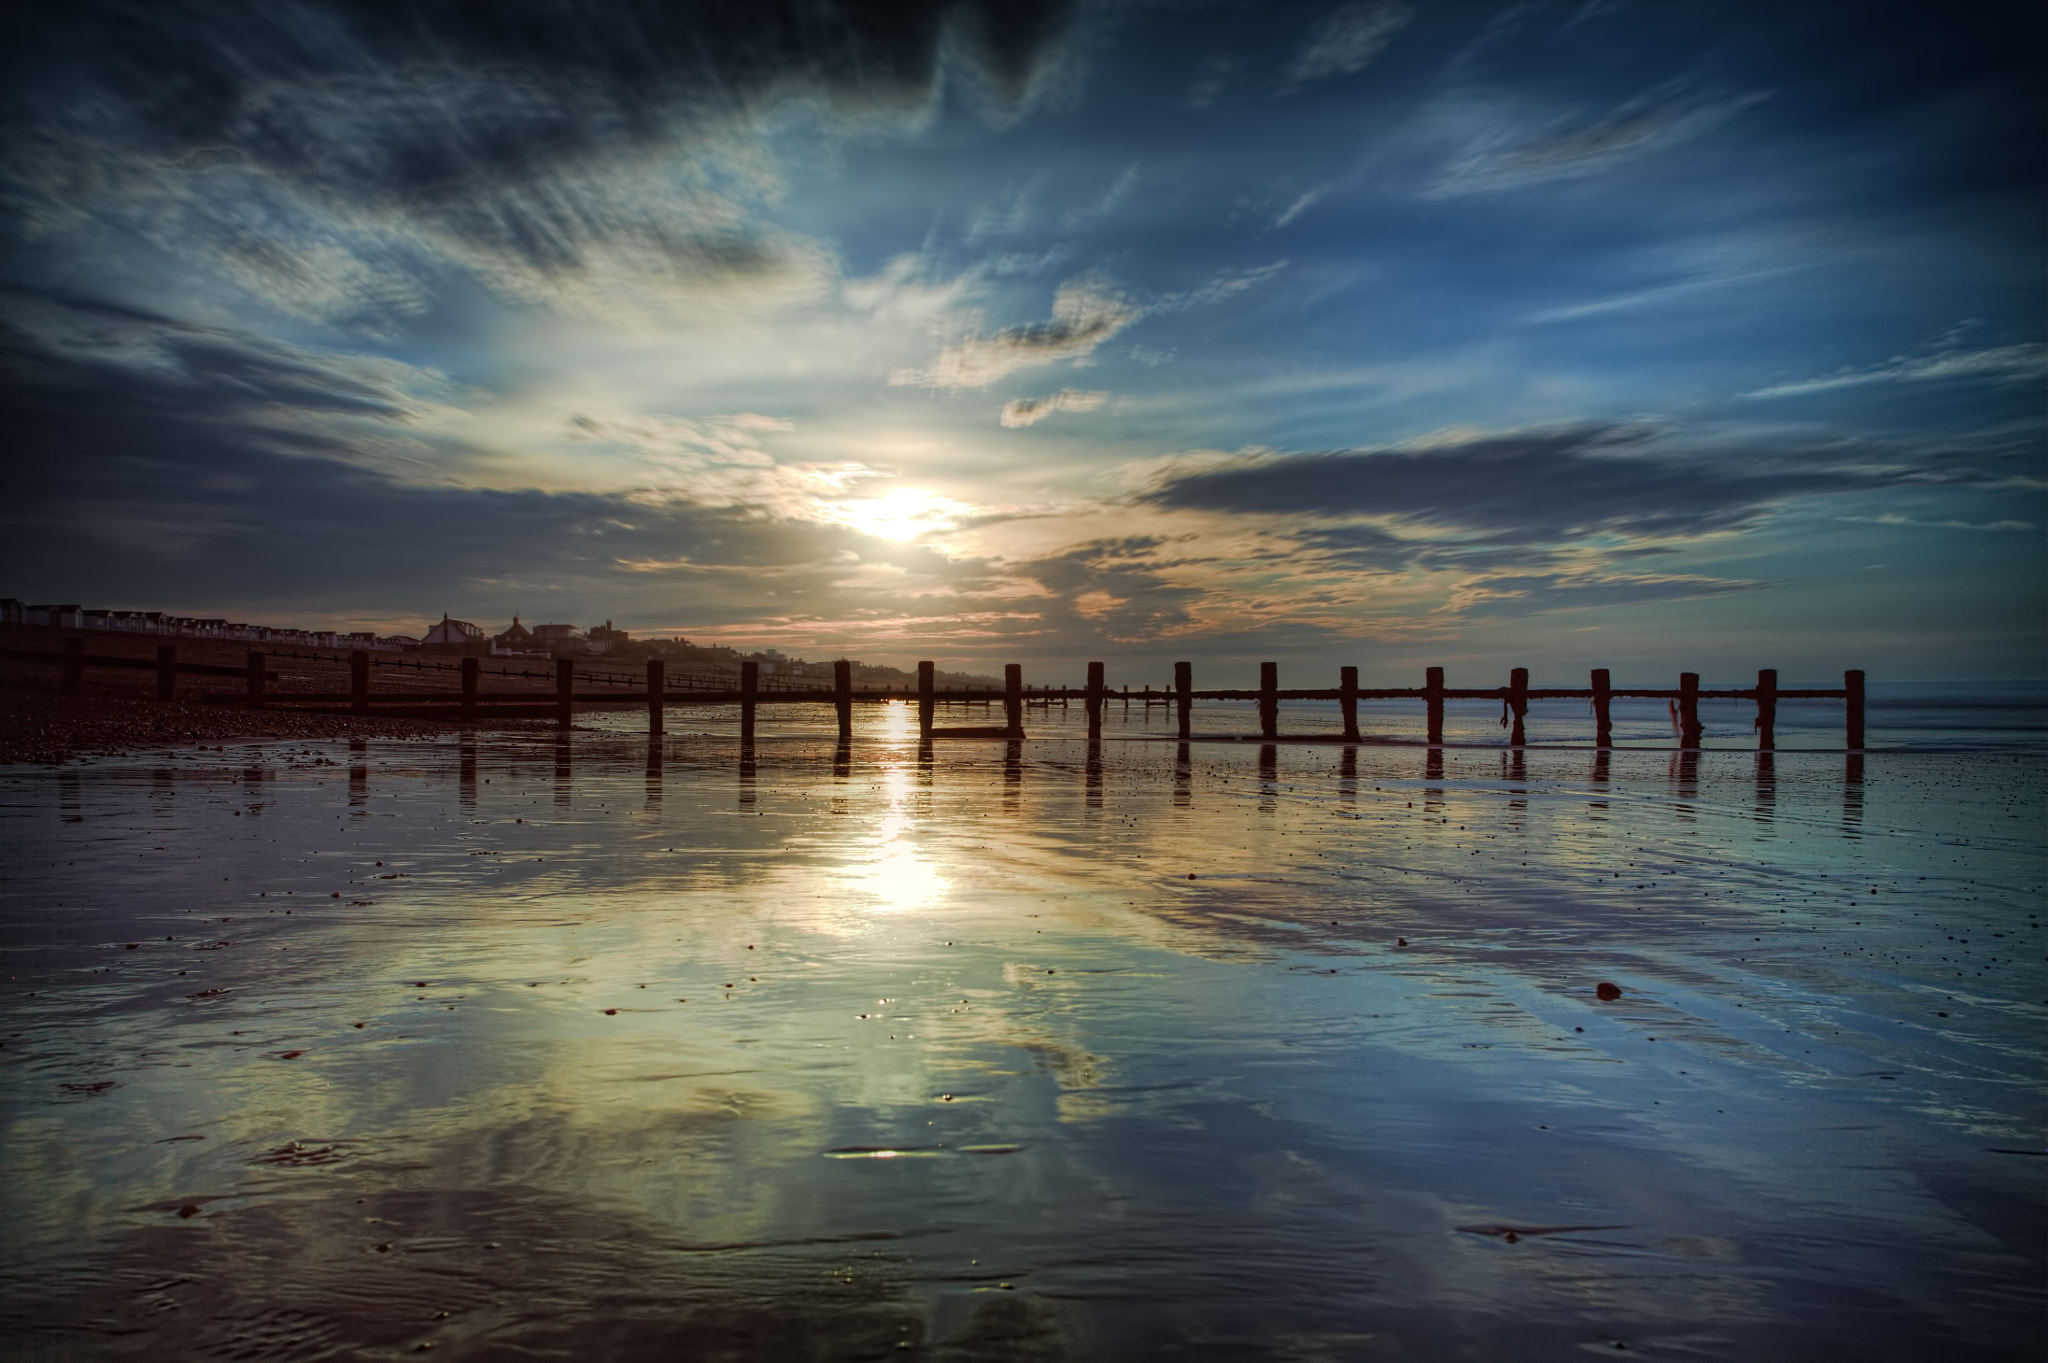 Photograph Reflections at normans bay  by Dean Bedding on 500px